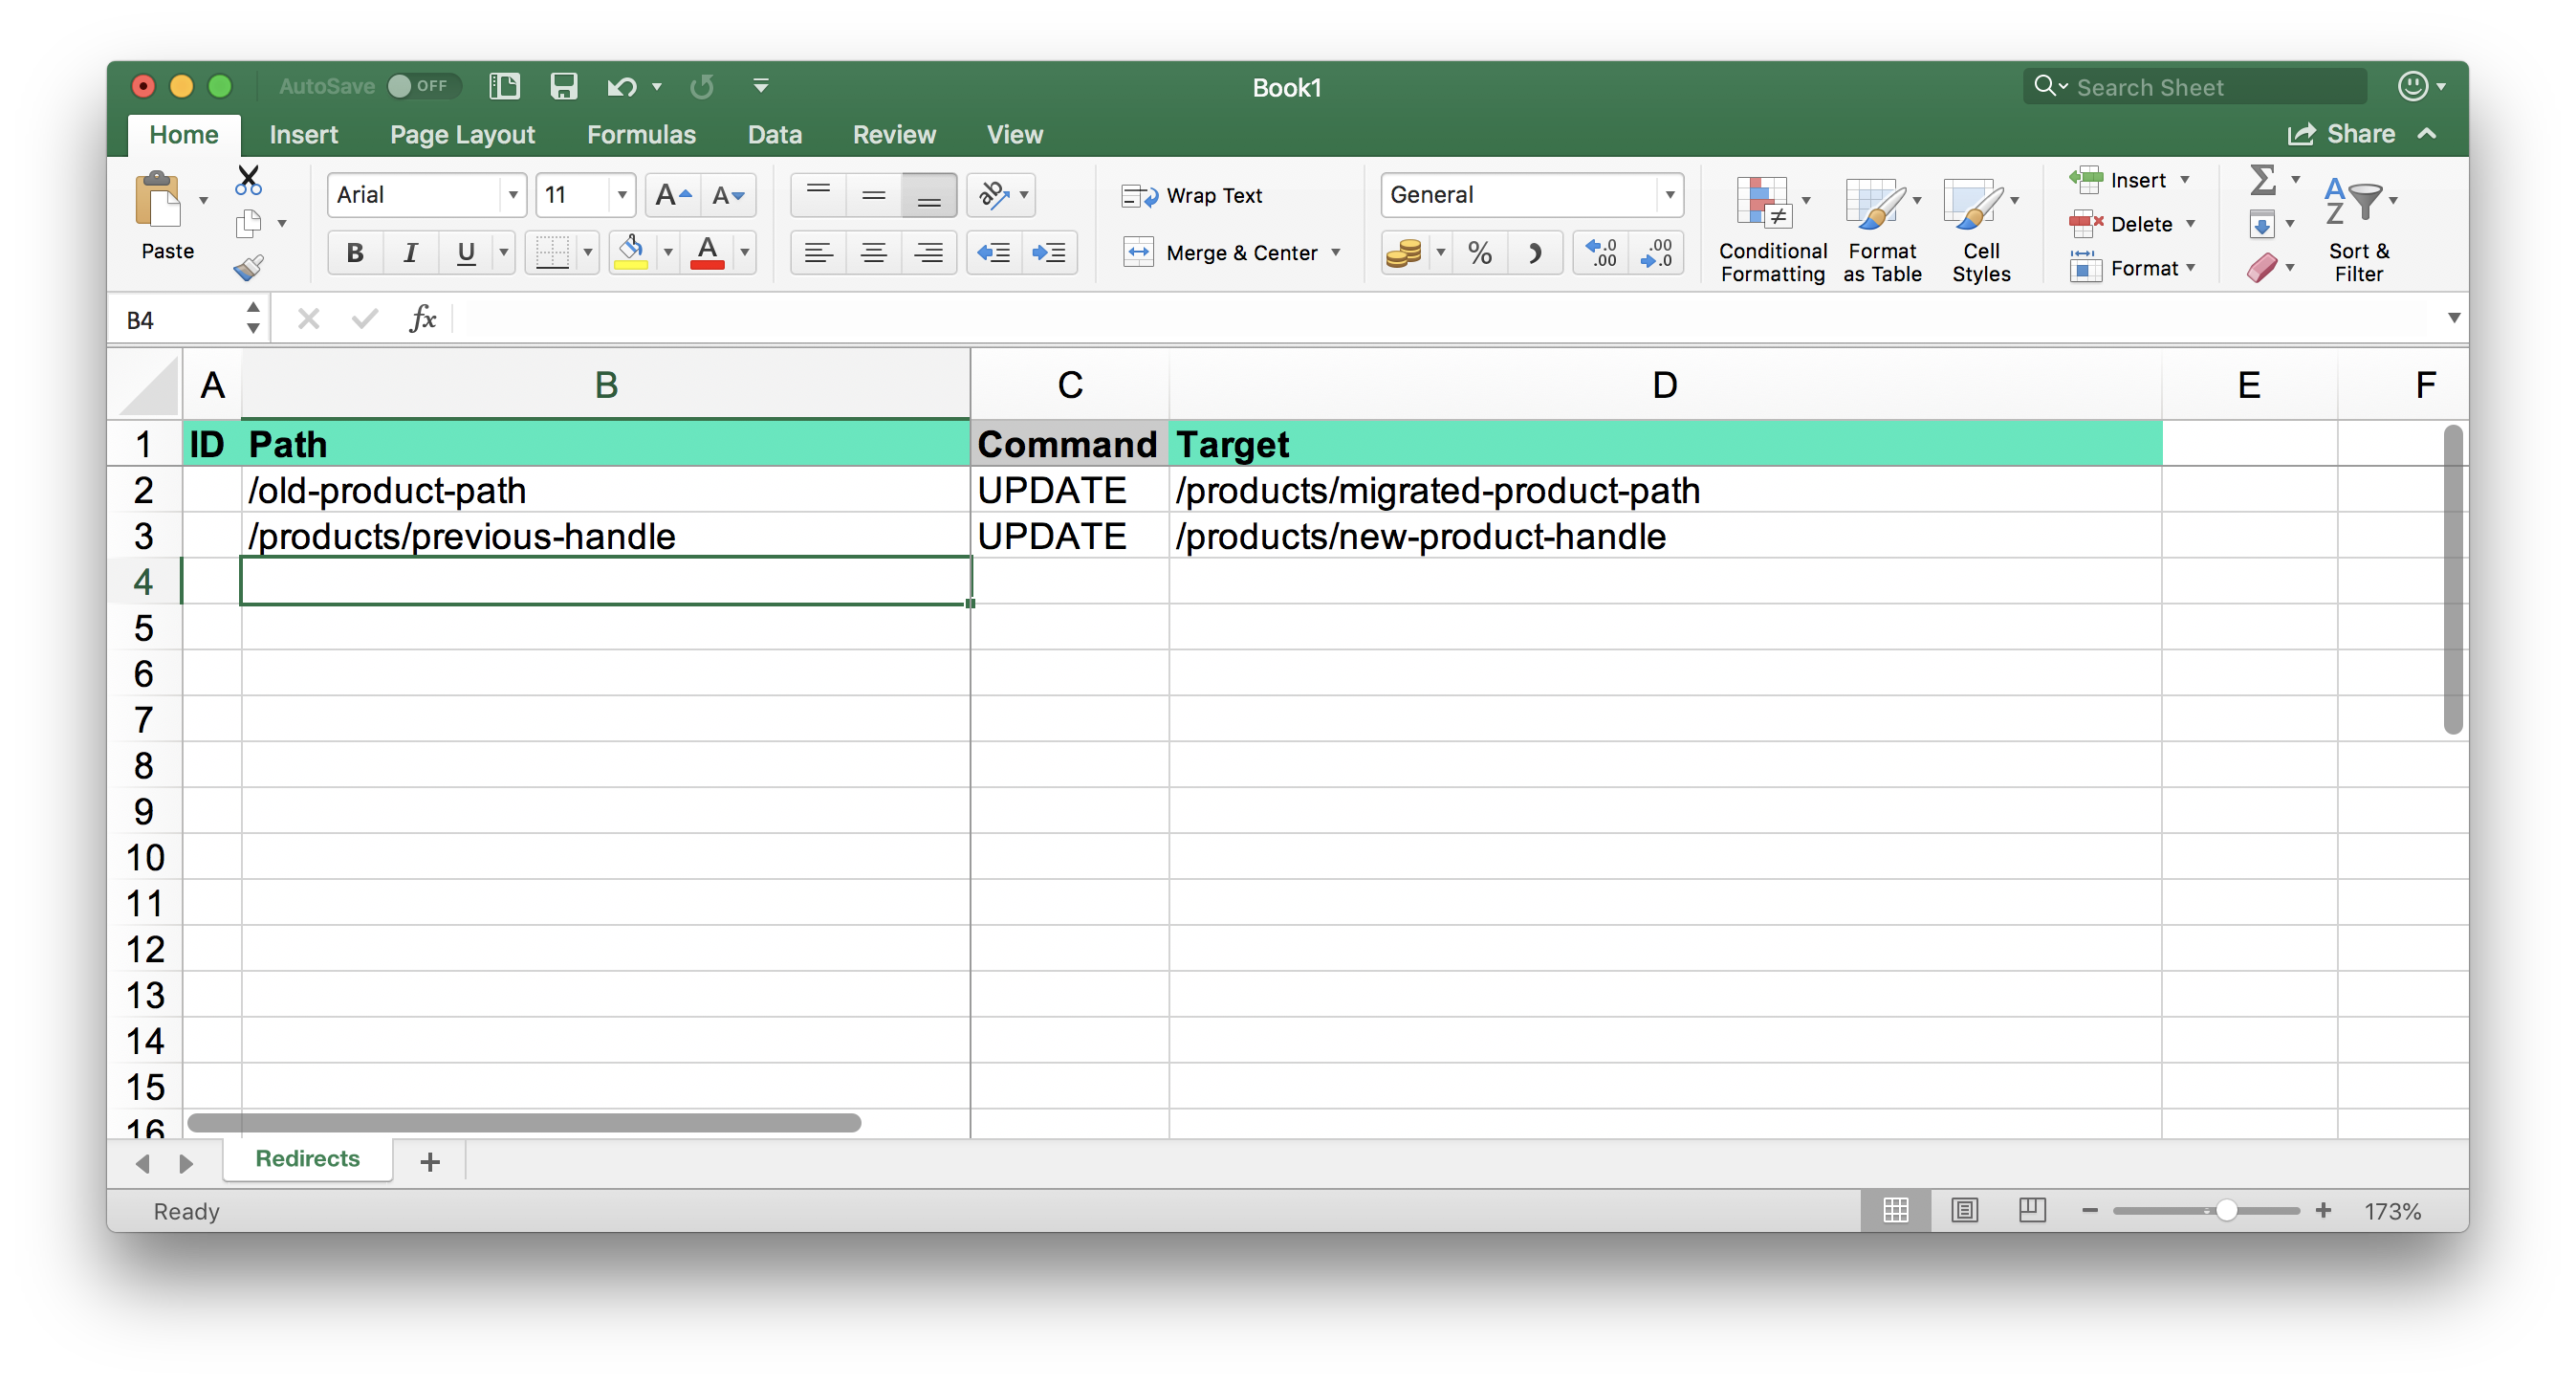 Shopify Redirects from Excel table